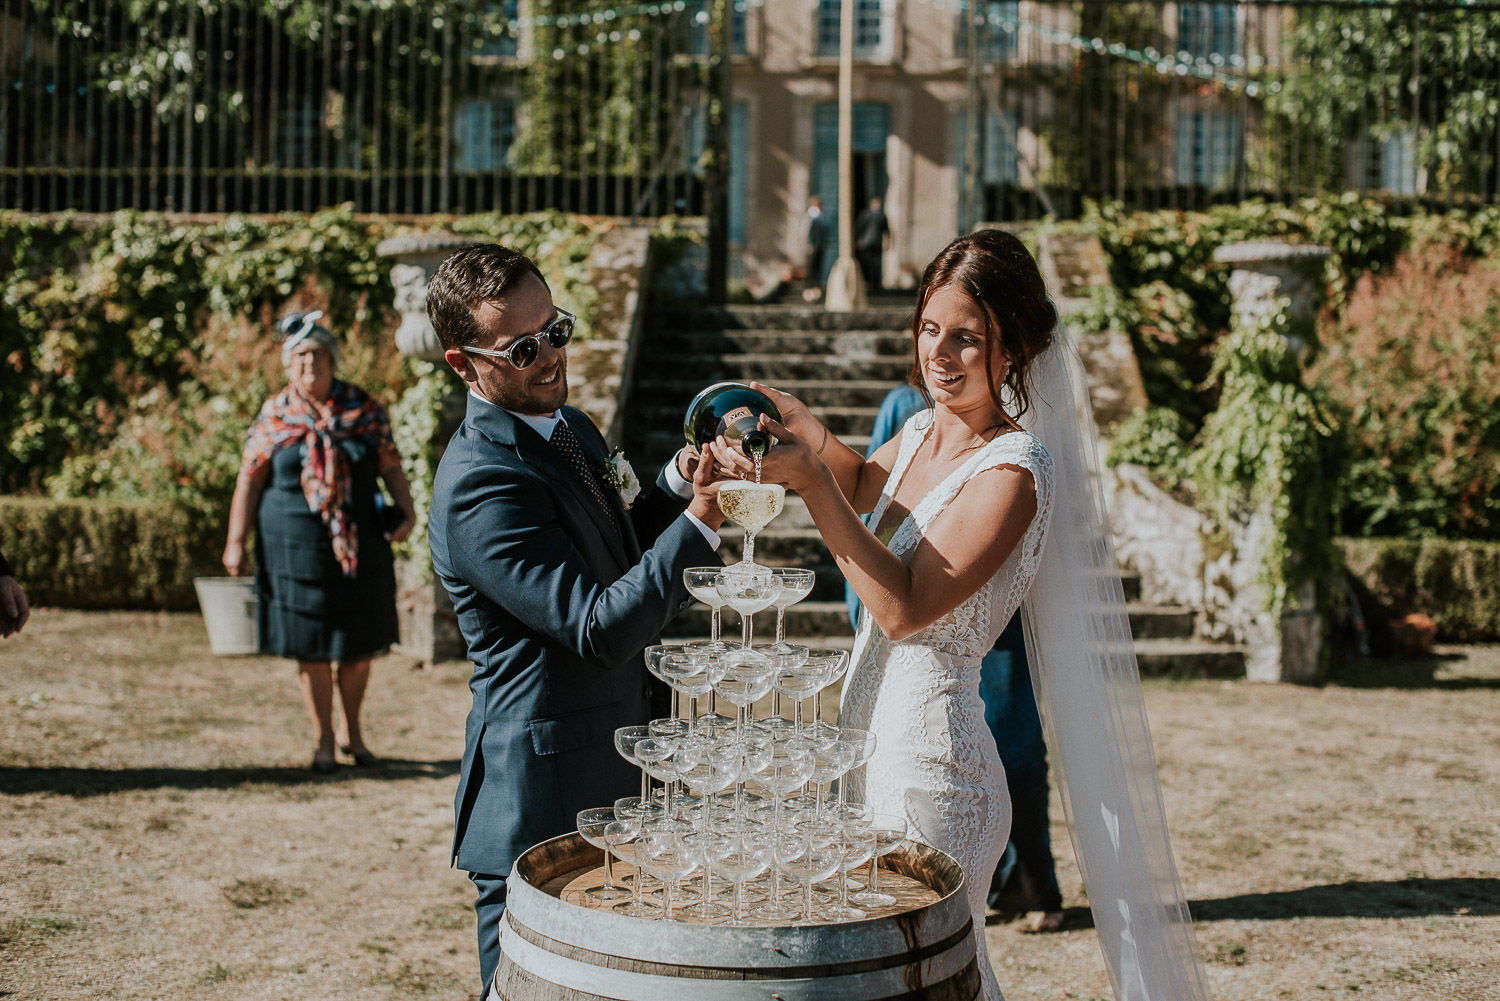 bergerac_wedding_katy_webb_photography_france_UK104